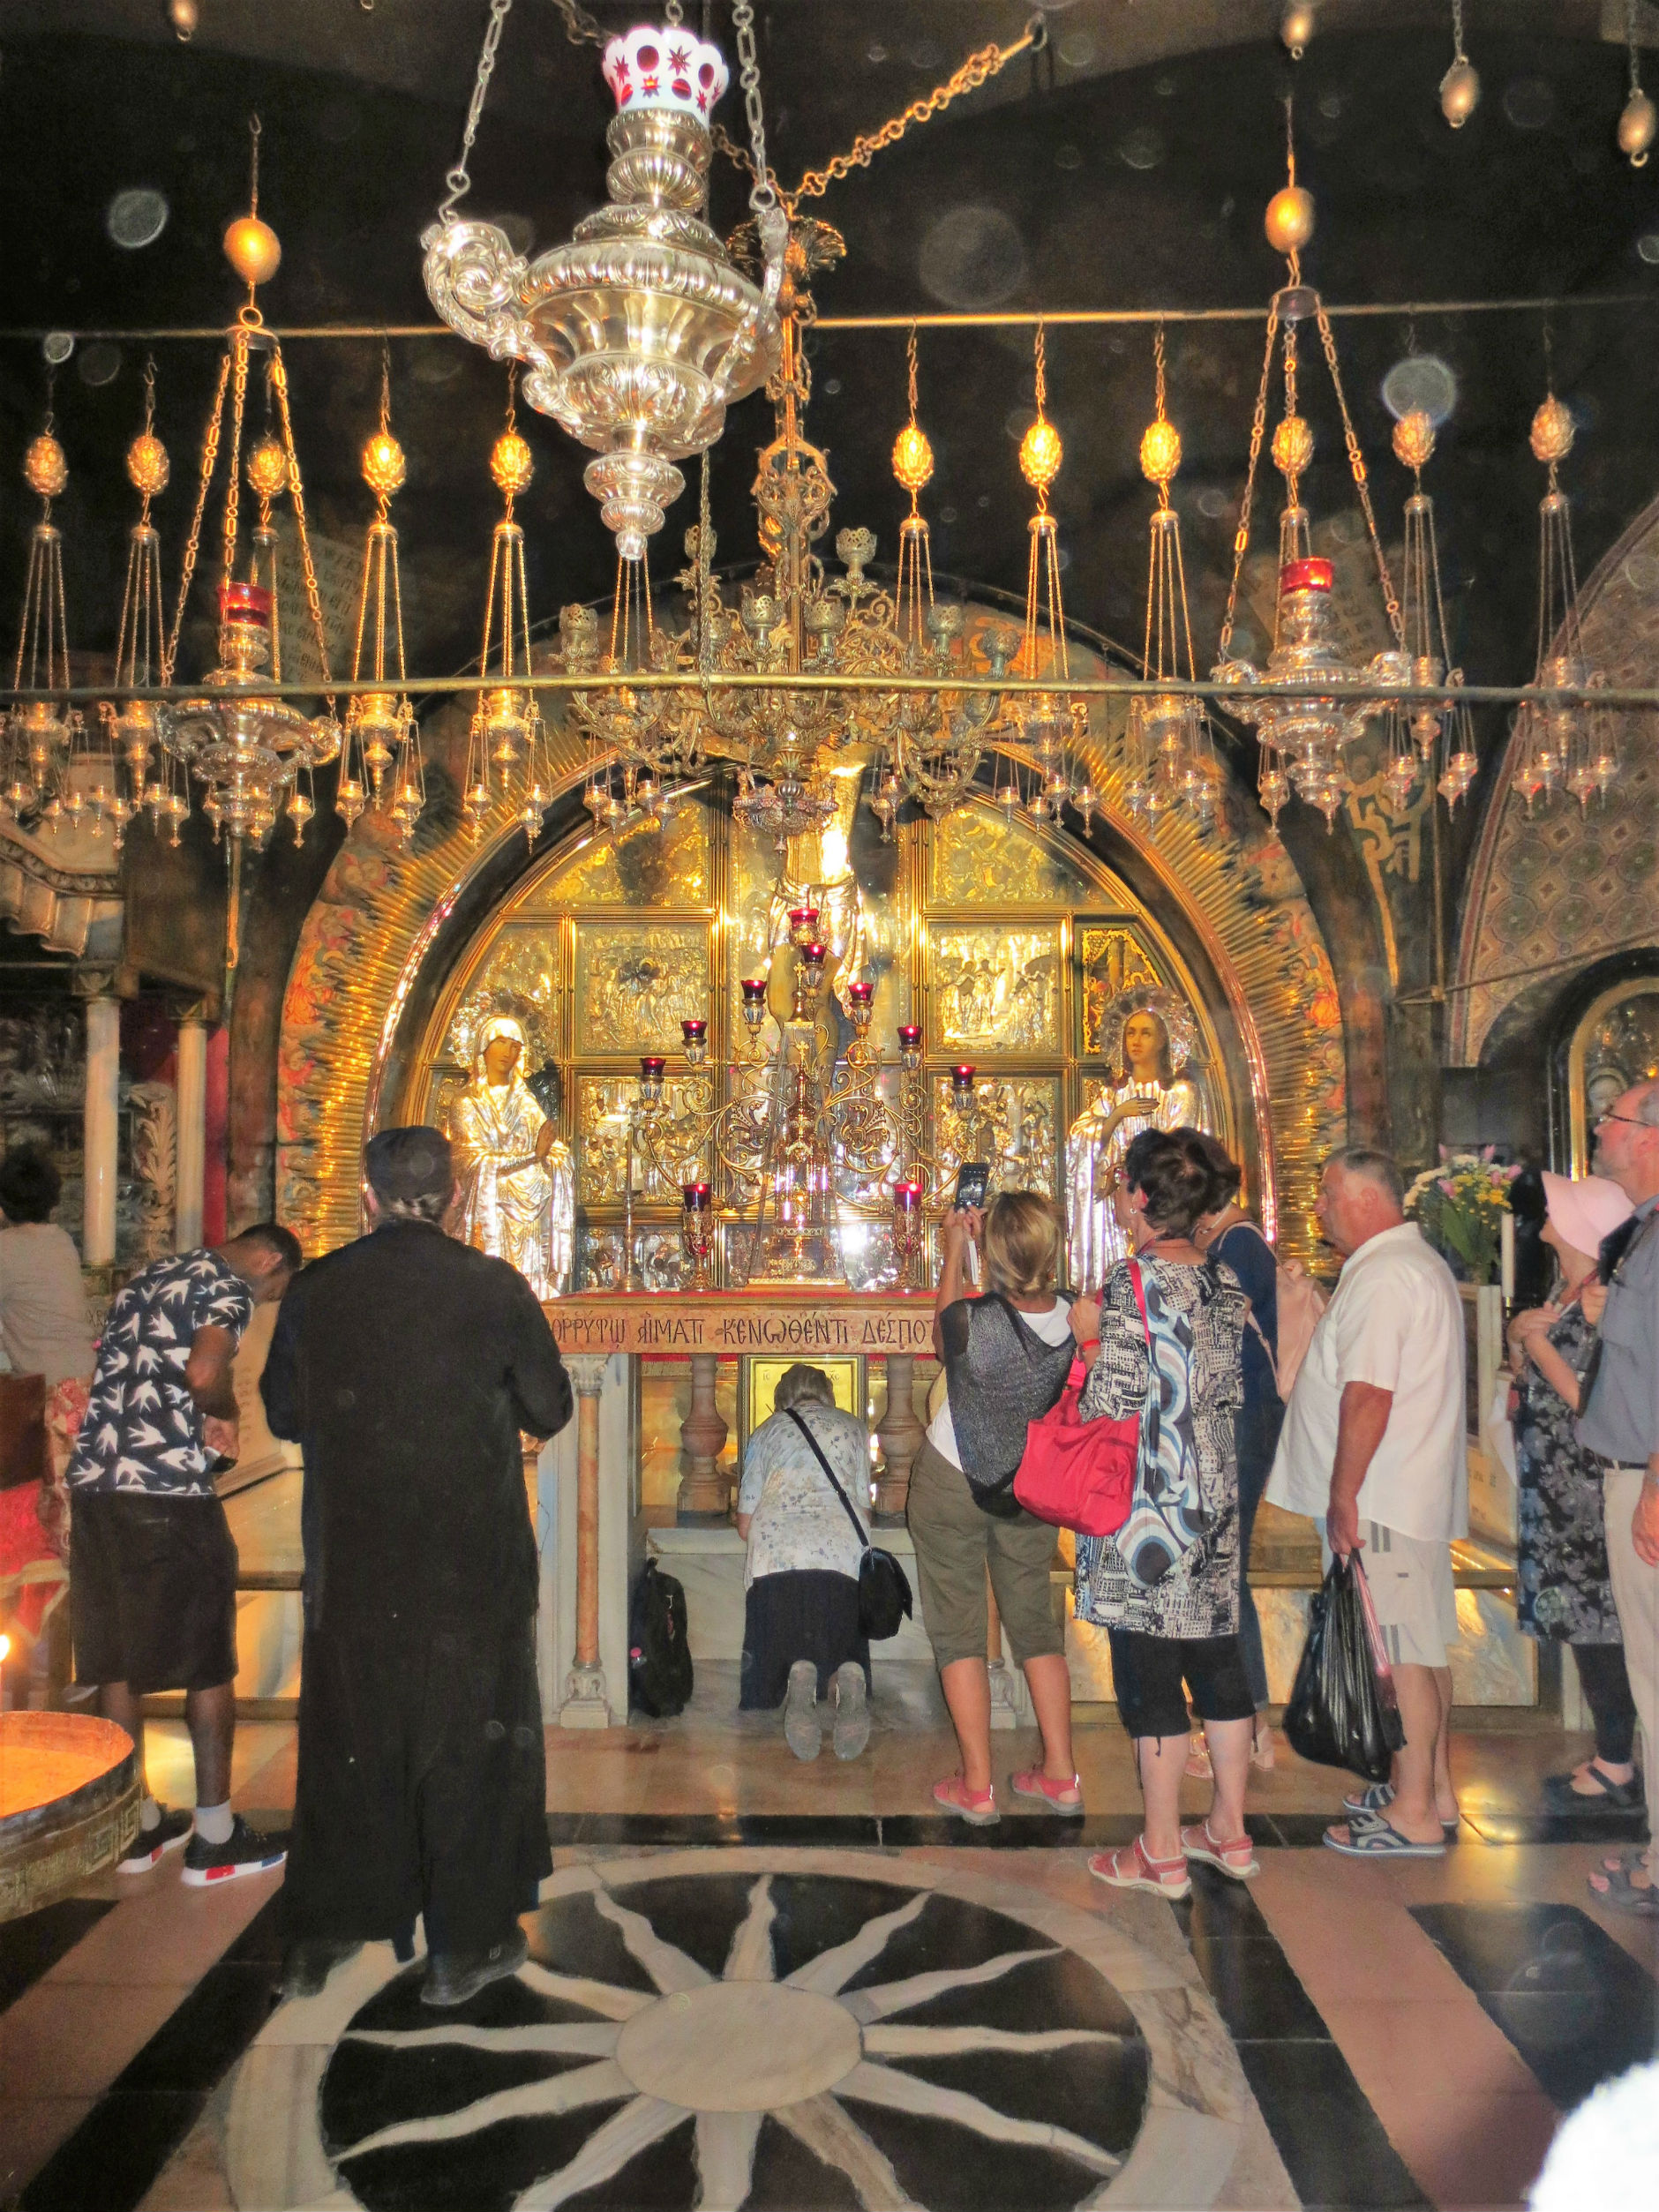 The Church of the Holy Sepulchre where Jesus died and resurrected. Pilgrims kiss the rock on which the cross stood.